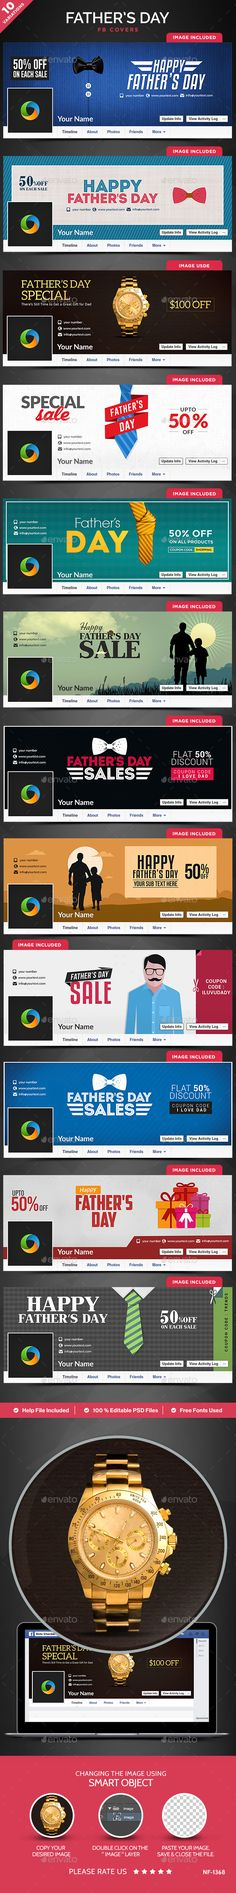 Corporate Social Media Pack Timeline, Template and Facebook - advertising timeline template